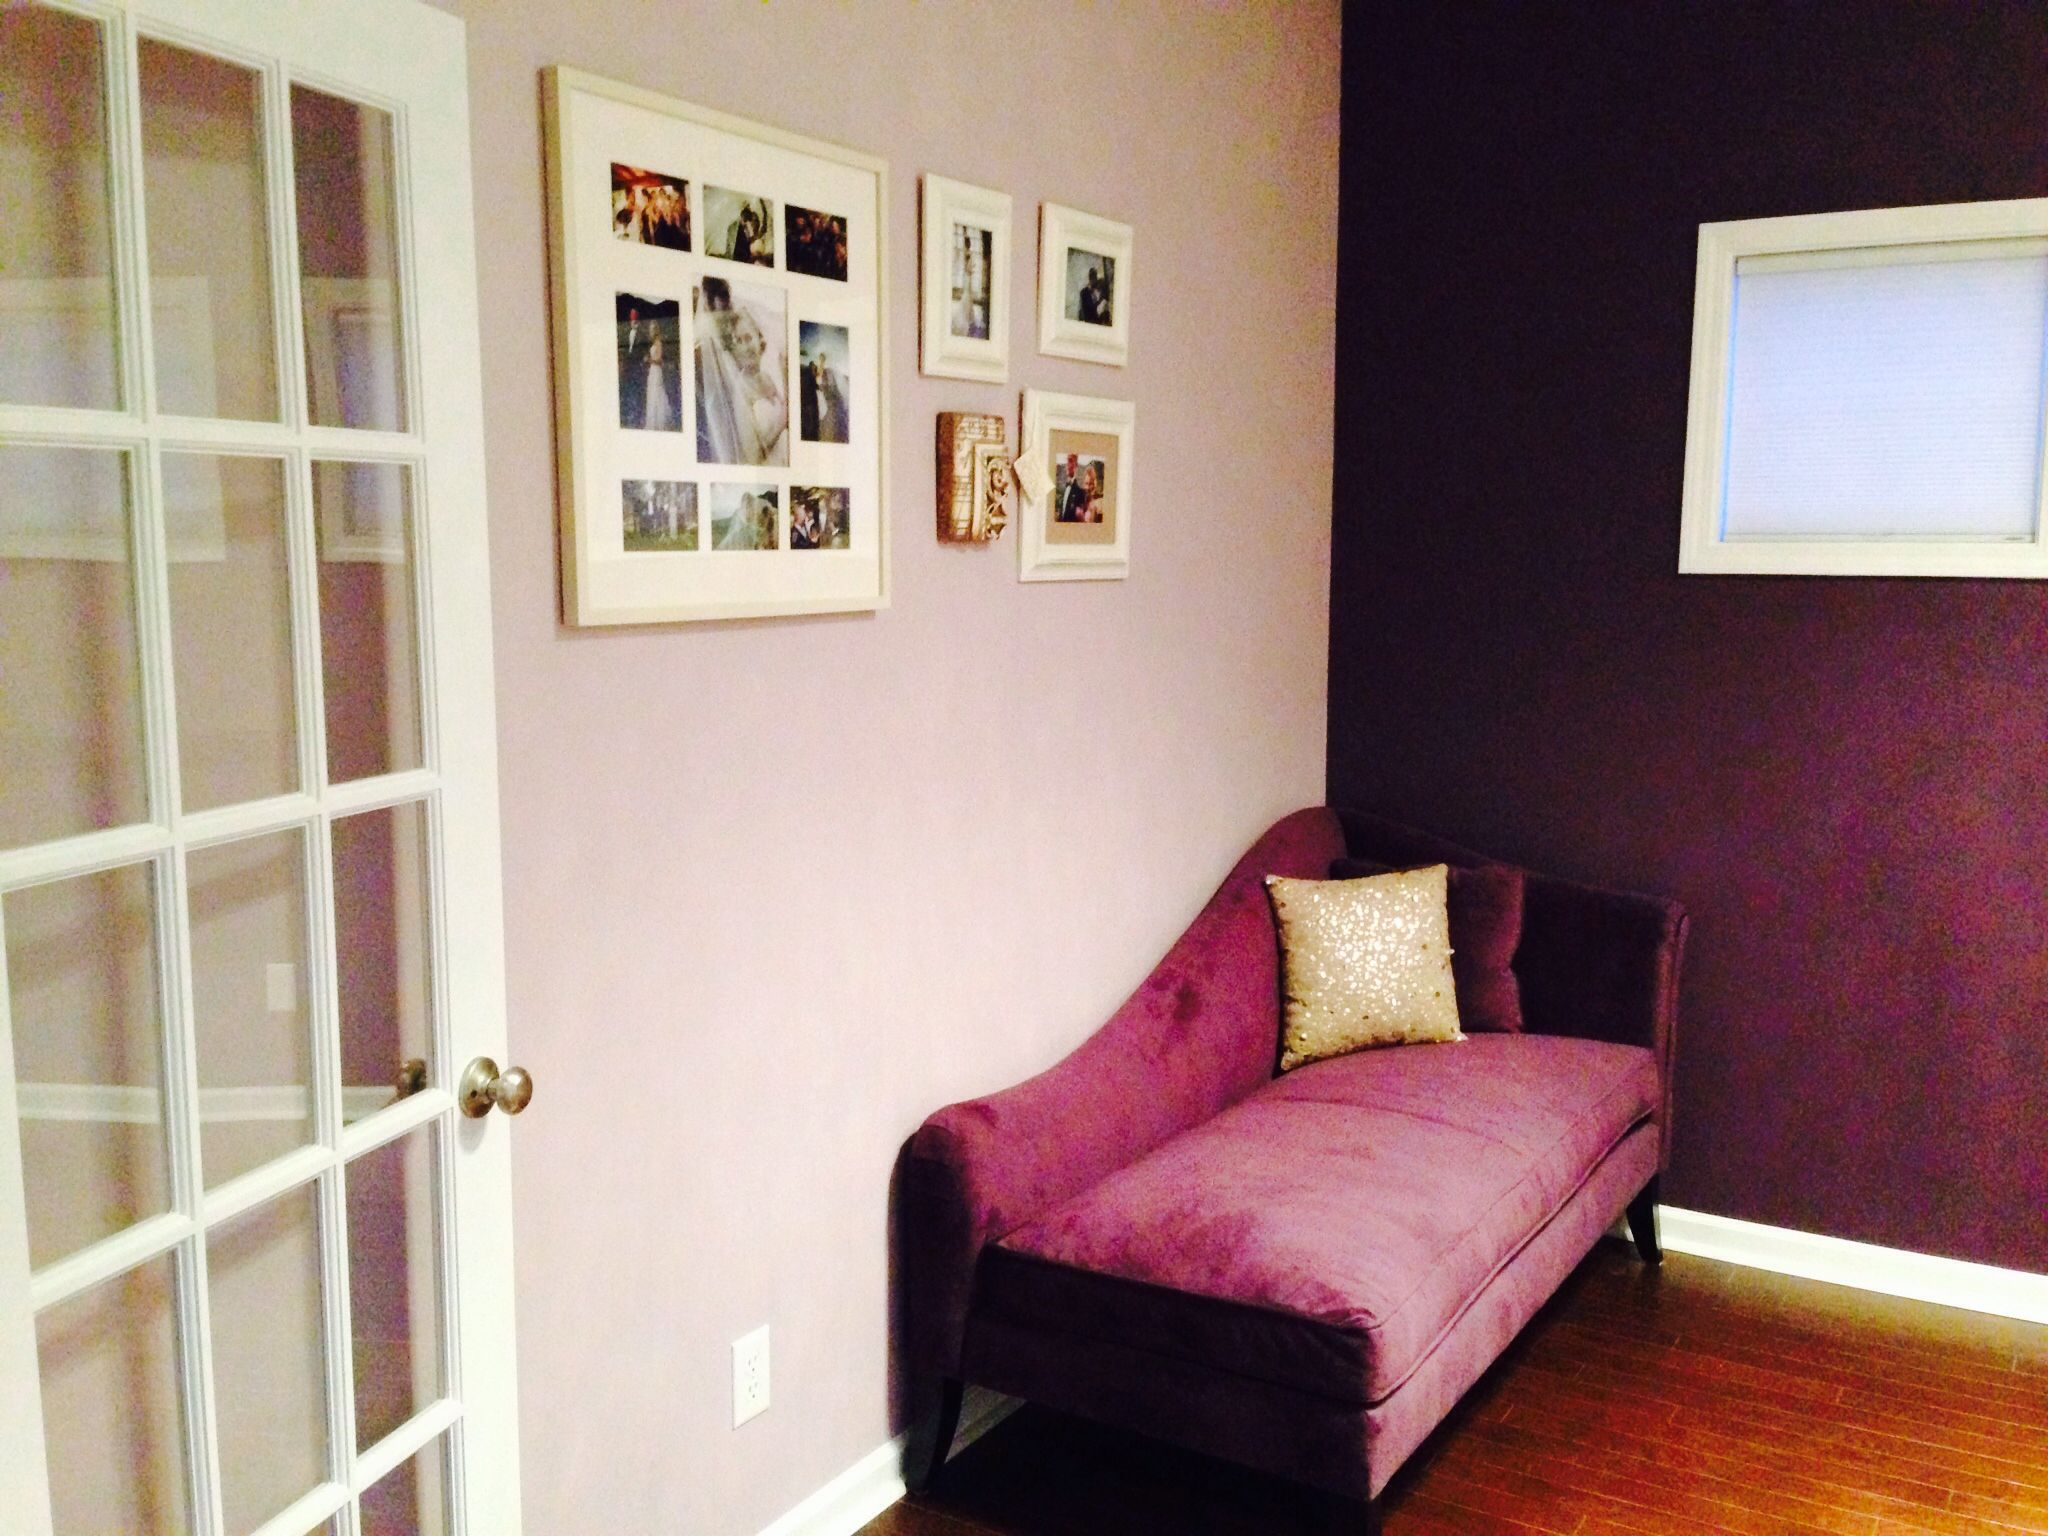 Purple chaise, French doors